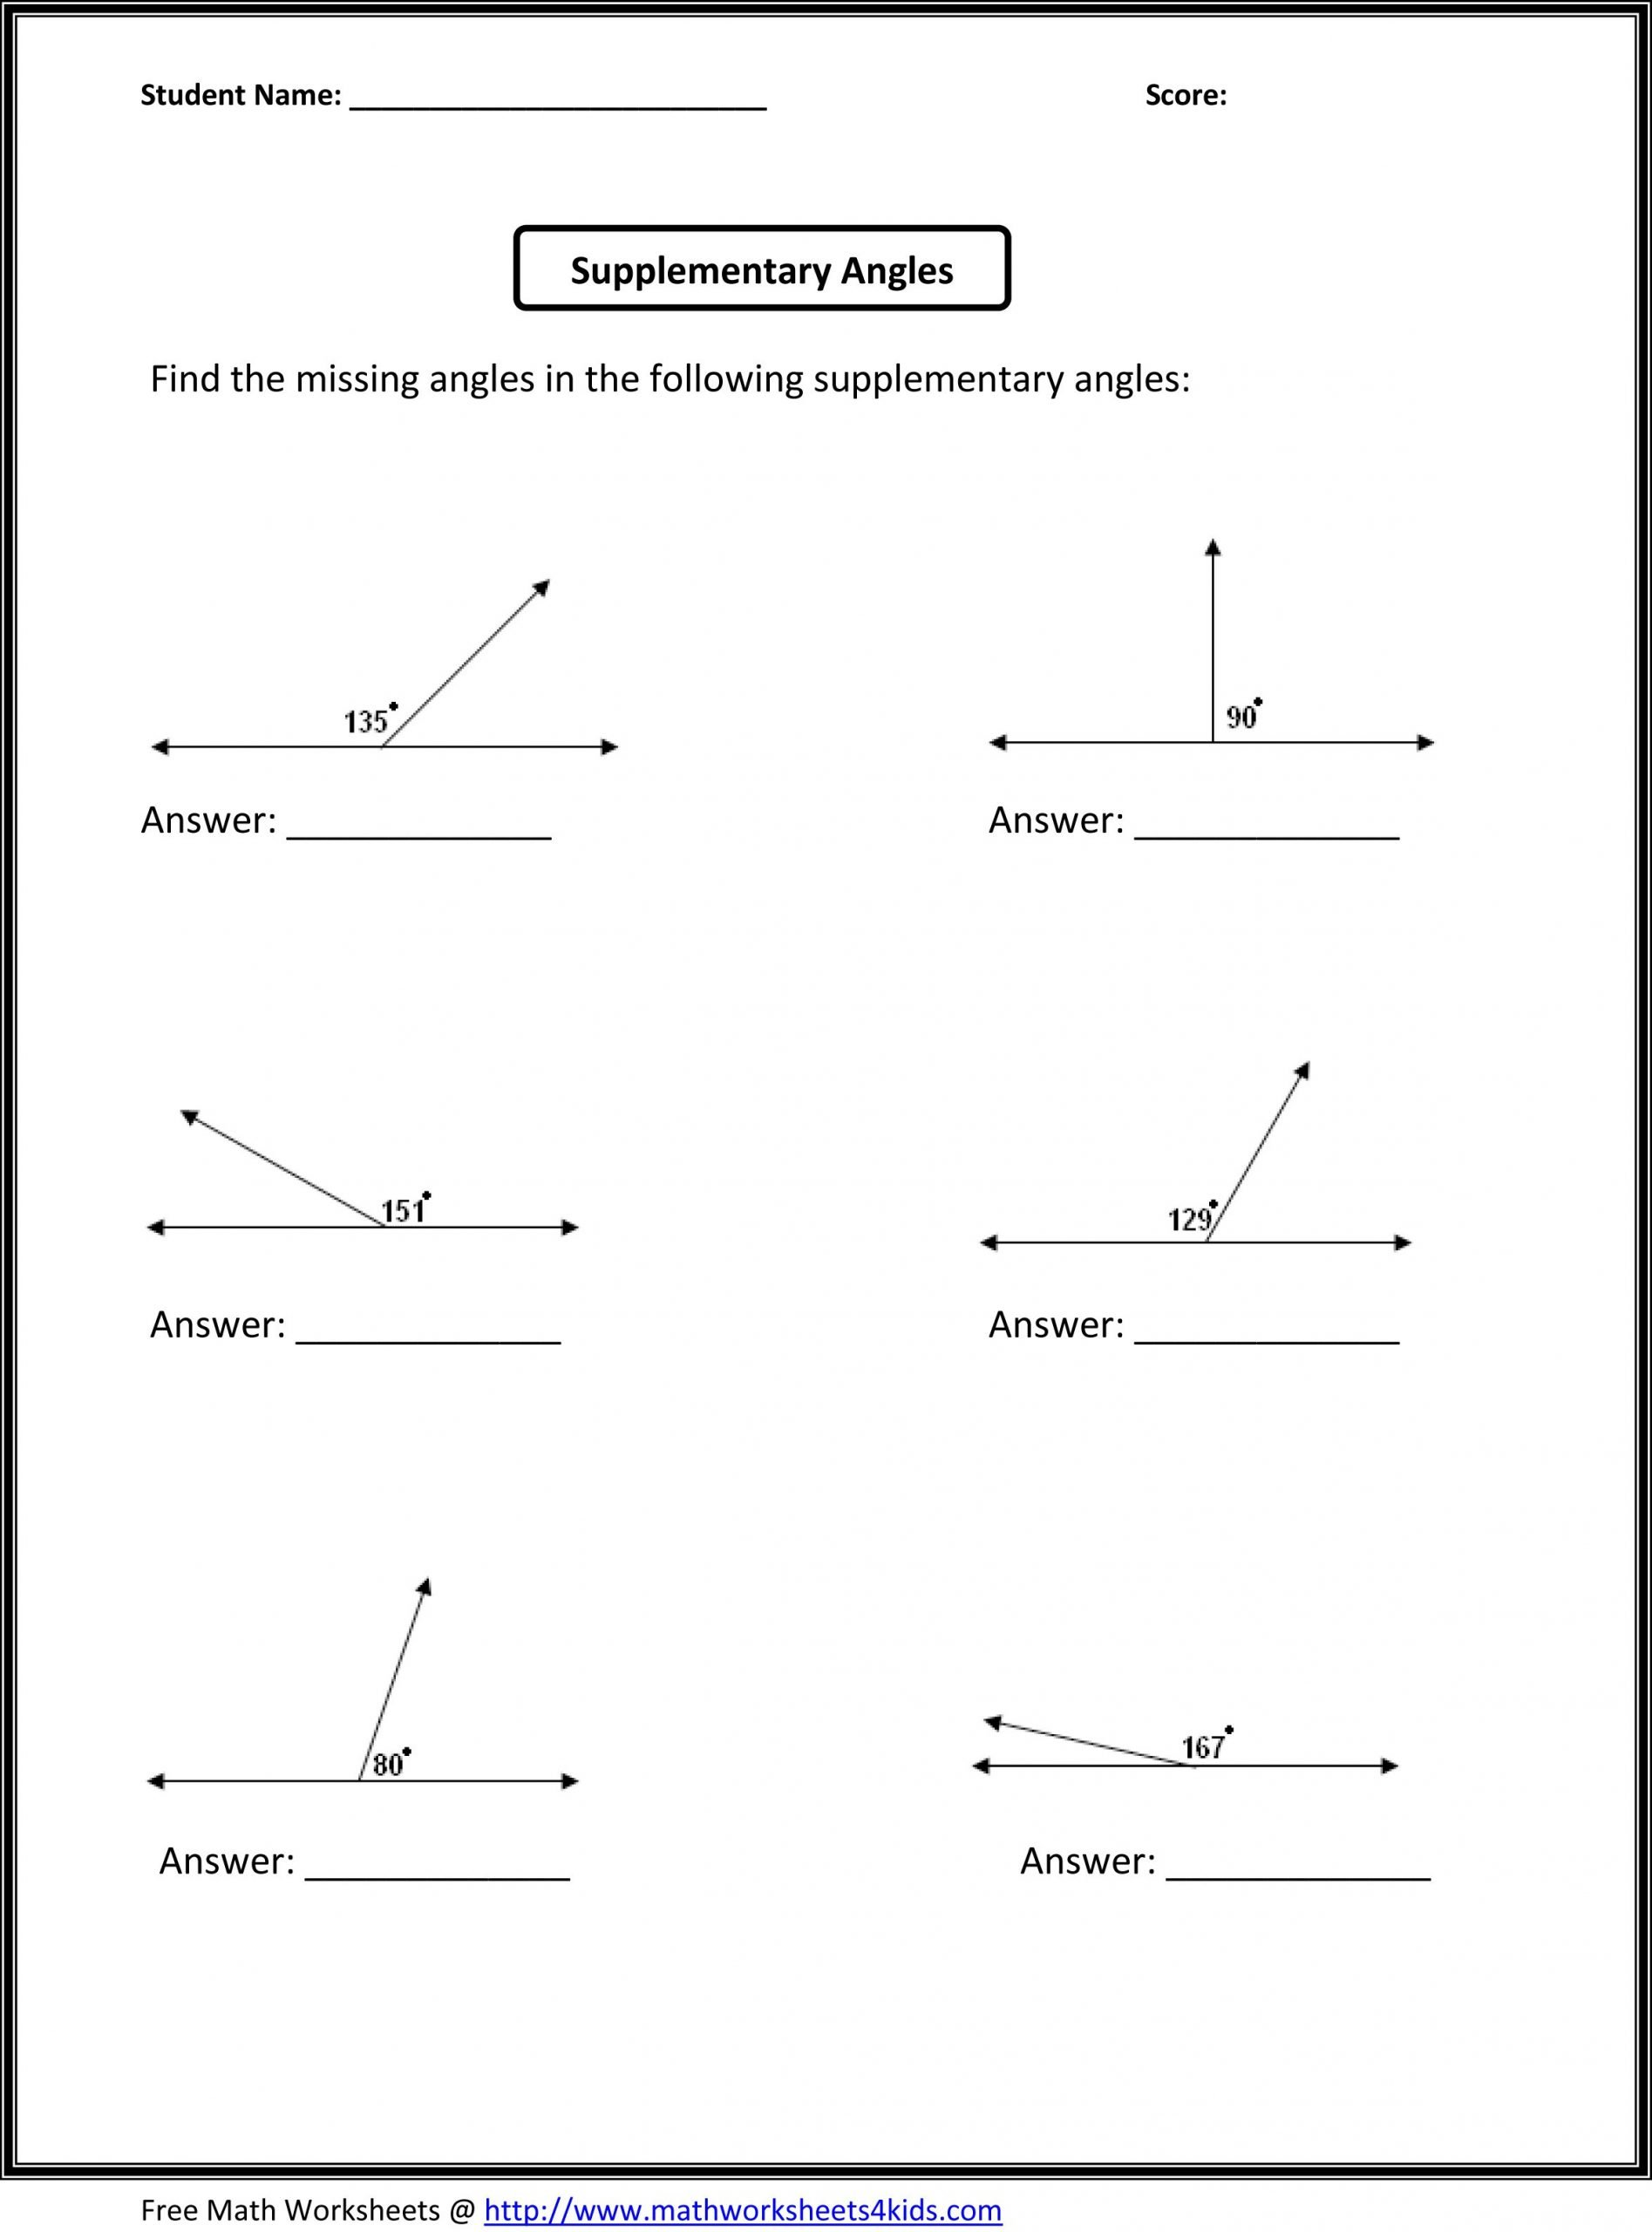 Worksheet Works Calculating Volume Worksheet Works Calculating area and Perimeter